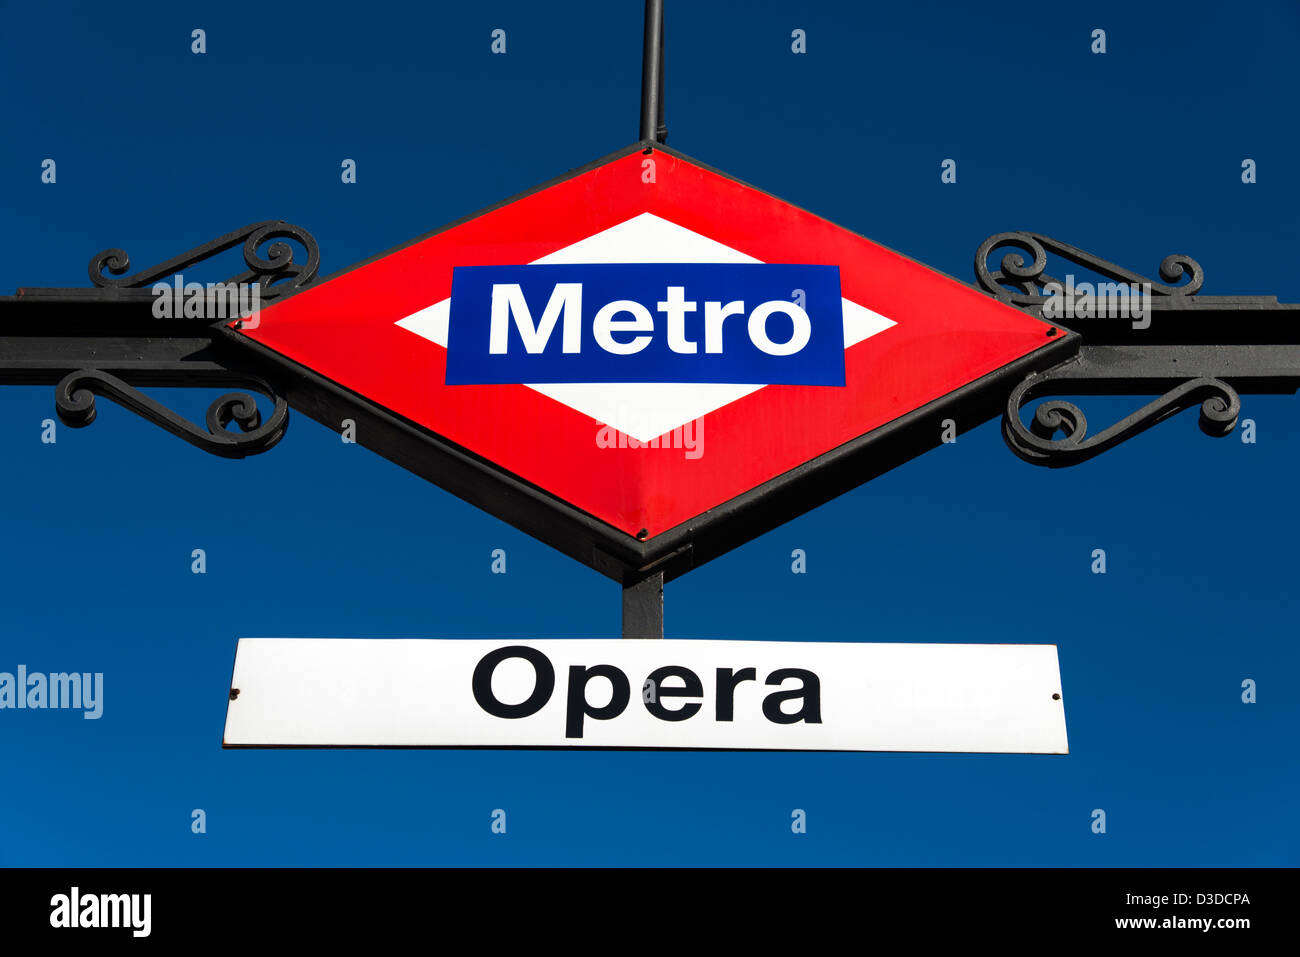 Opera metro station sign, Madrid, Spain - Stock Image